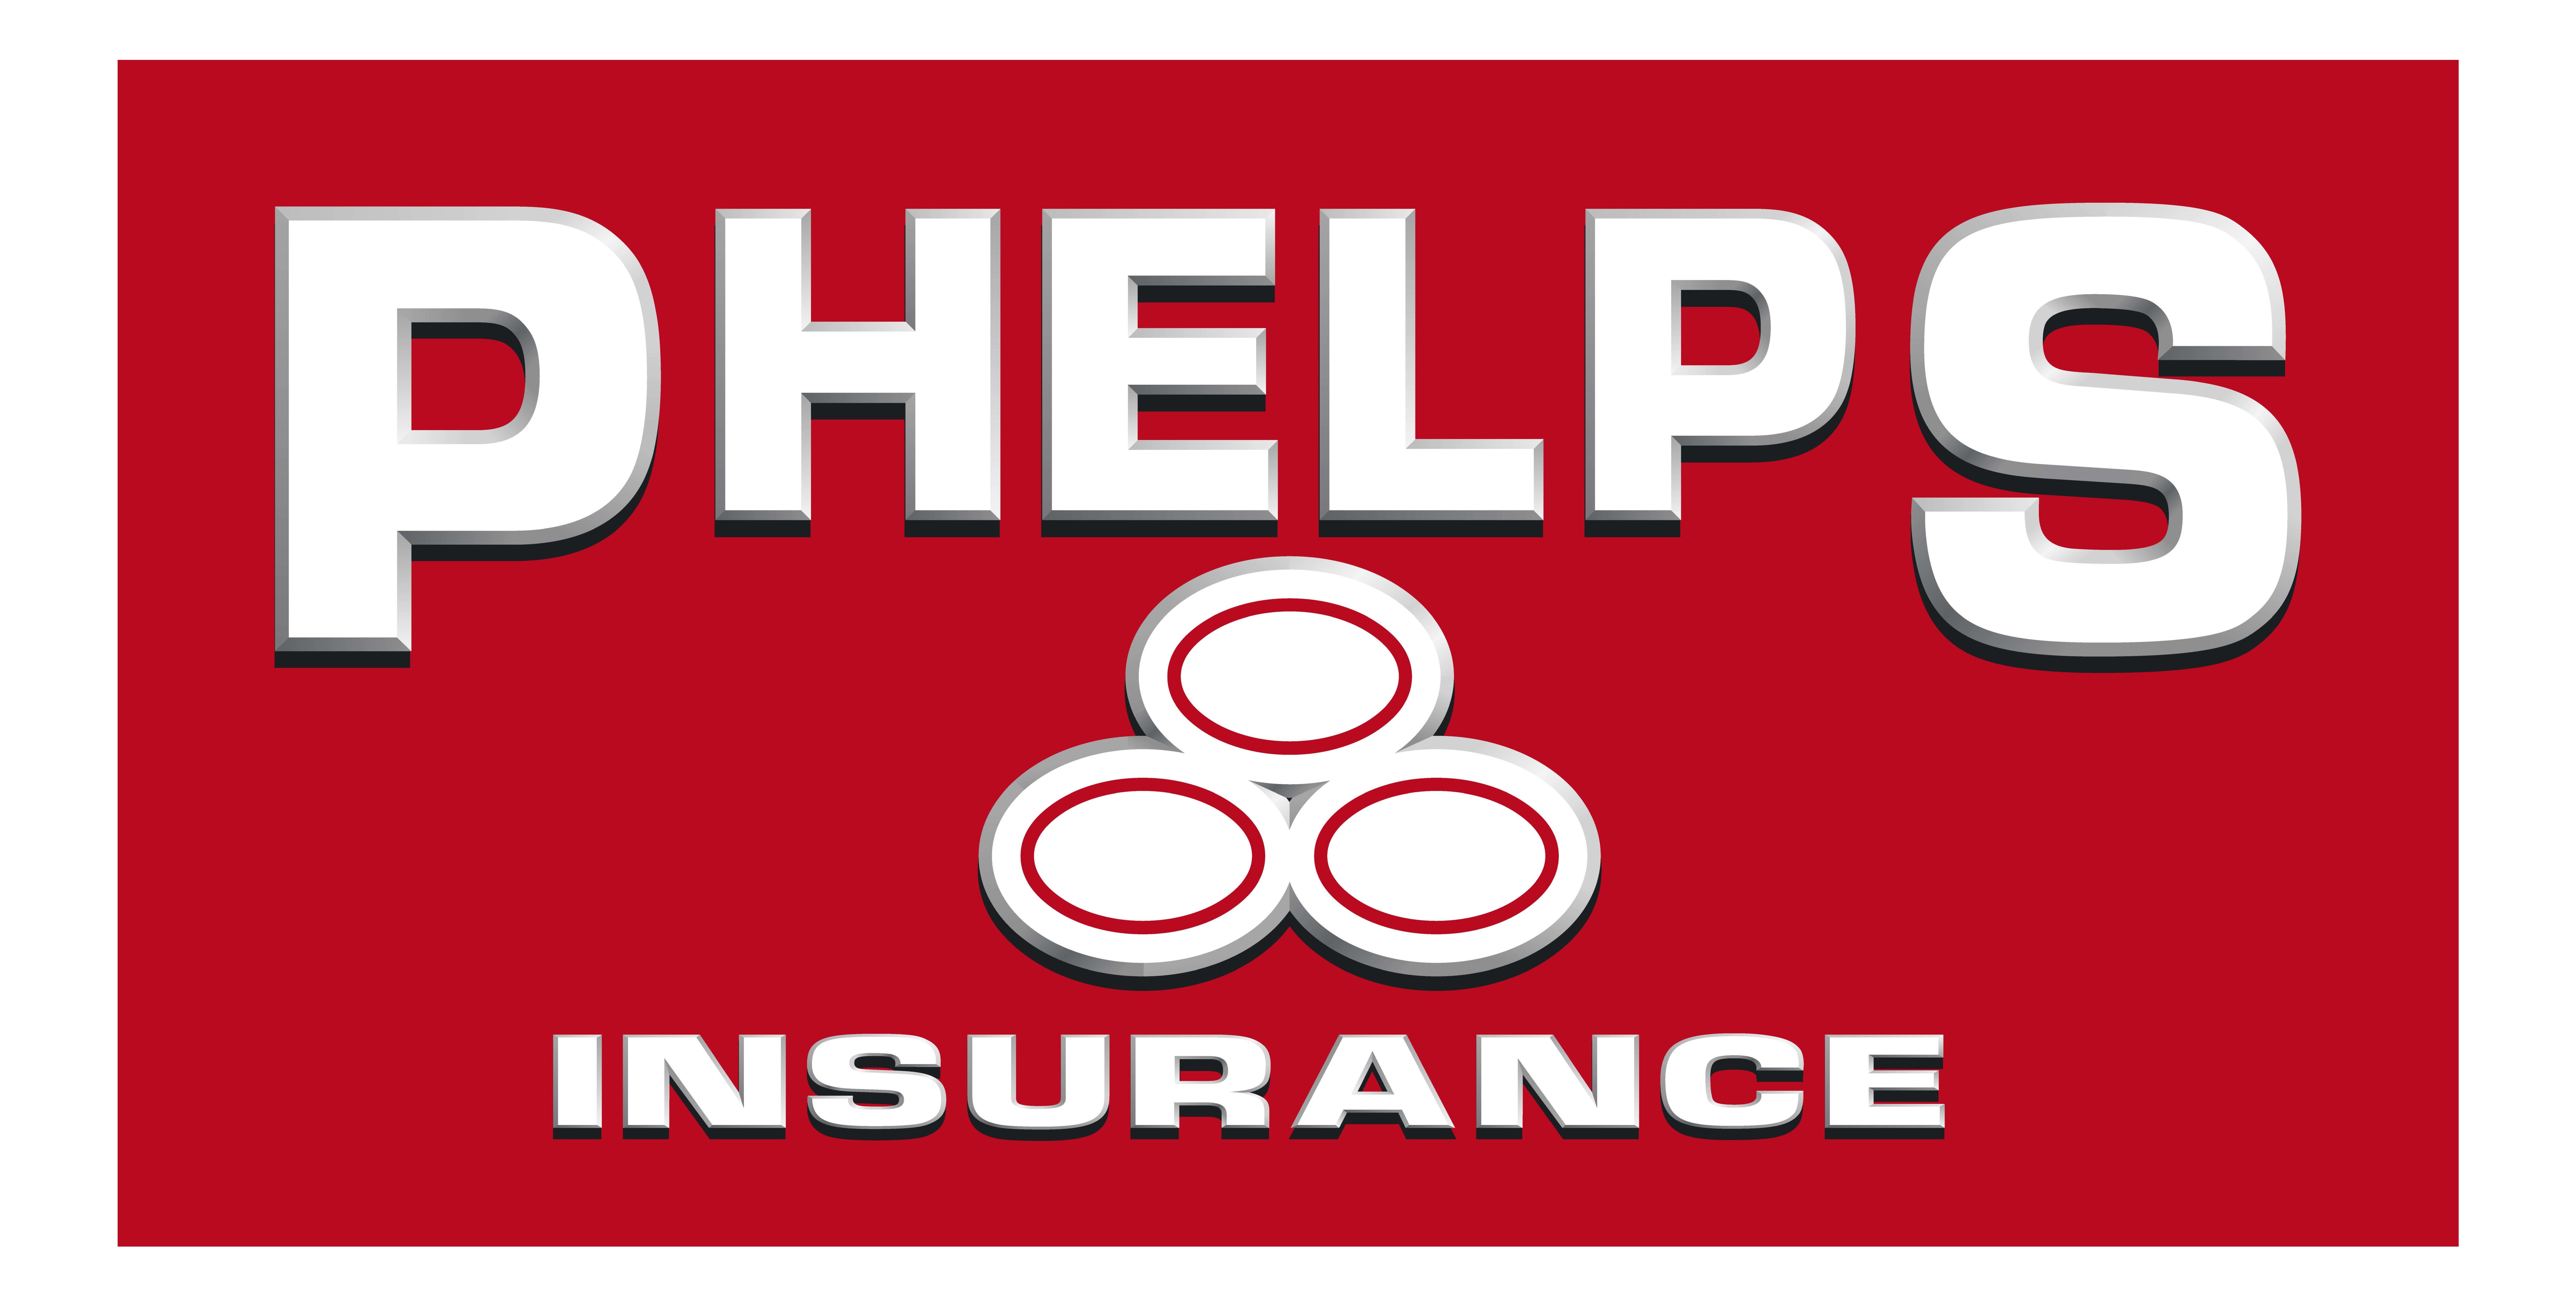 Phelps-Insurance-New.jpg